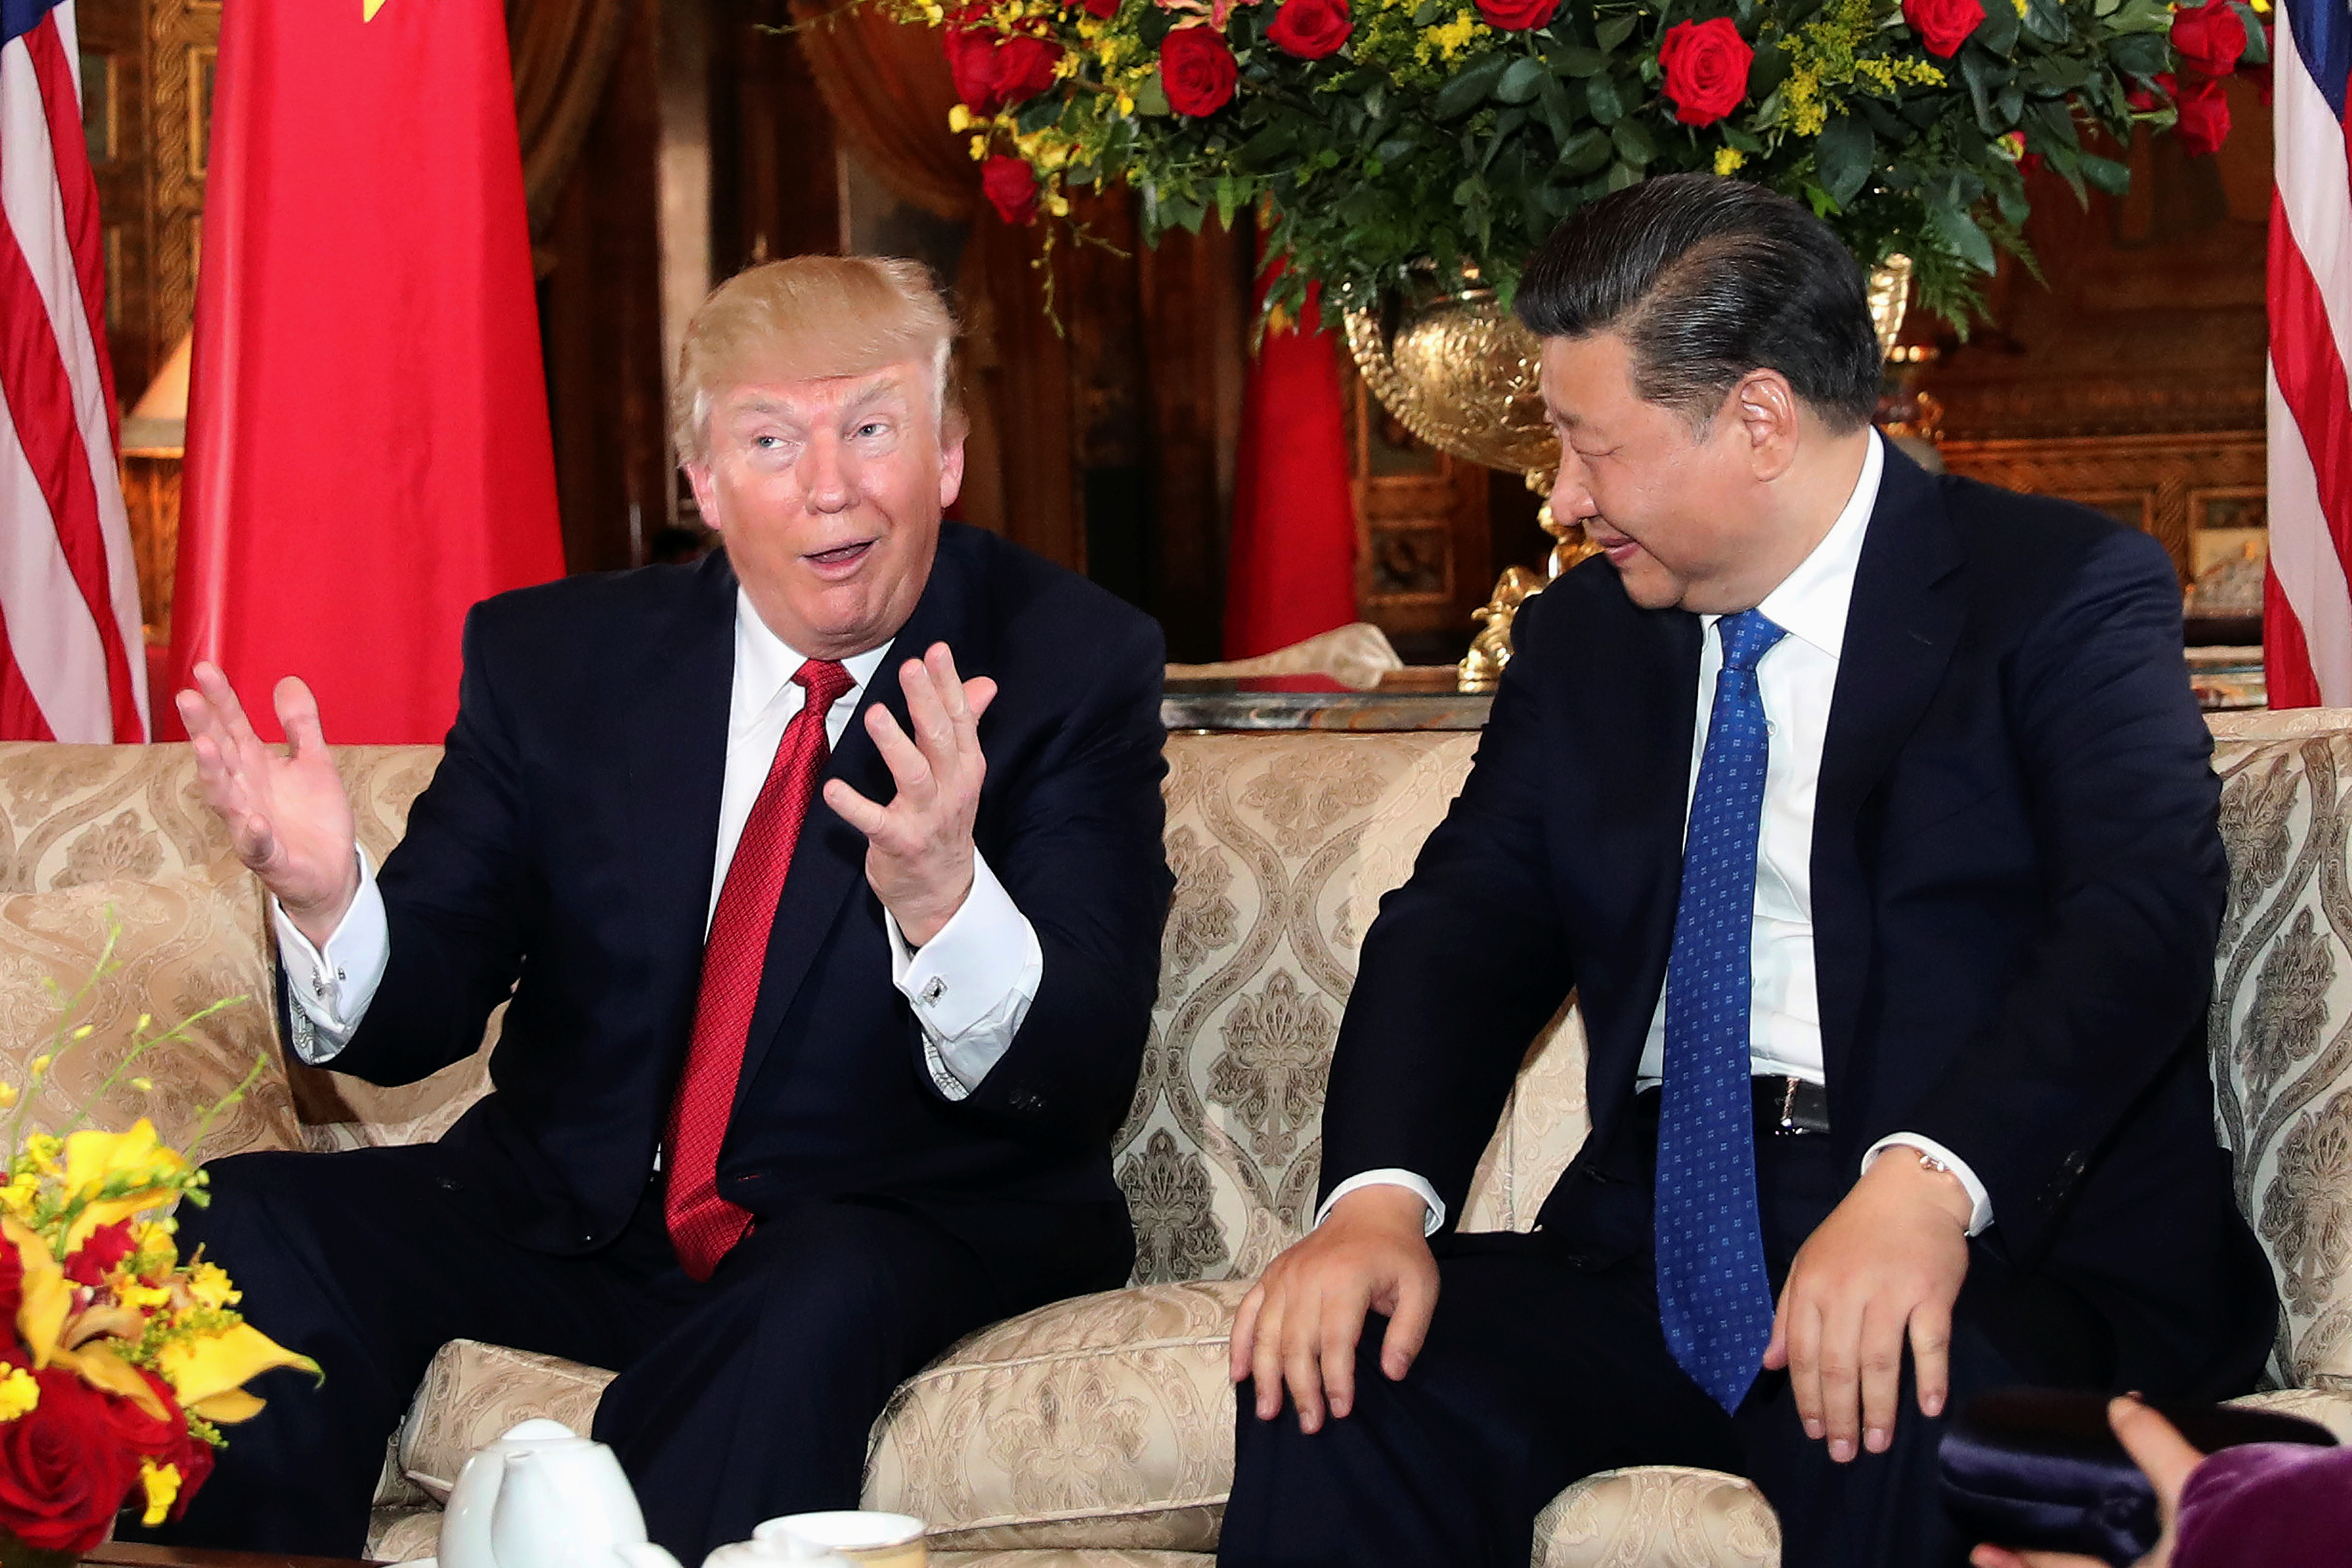 President Donald Trump meeting with Chinese President Xi Jinping at Mar-a-Lago, Florida, April 6th 2017